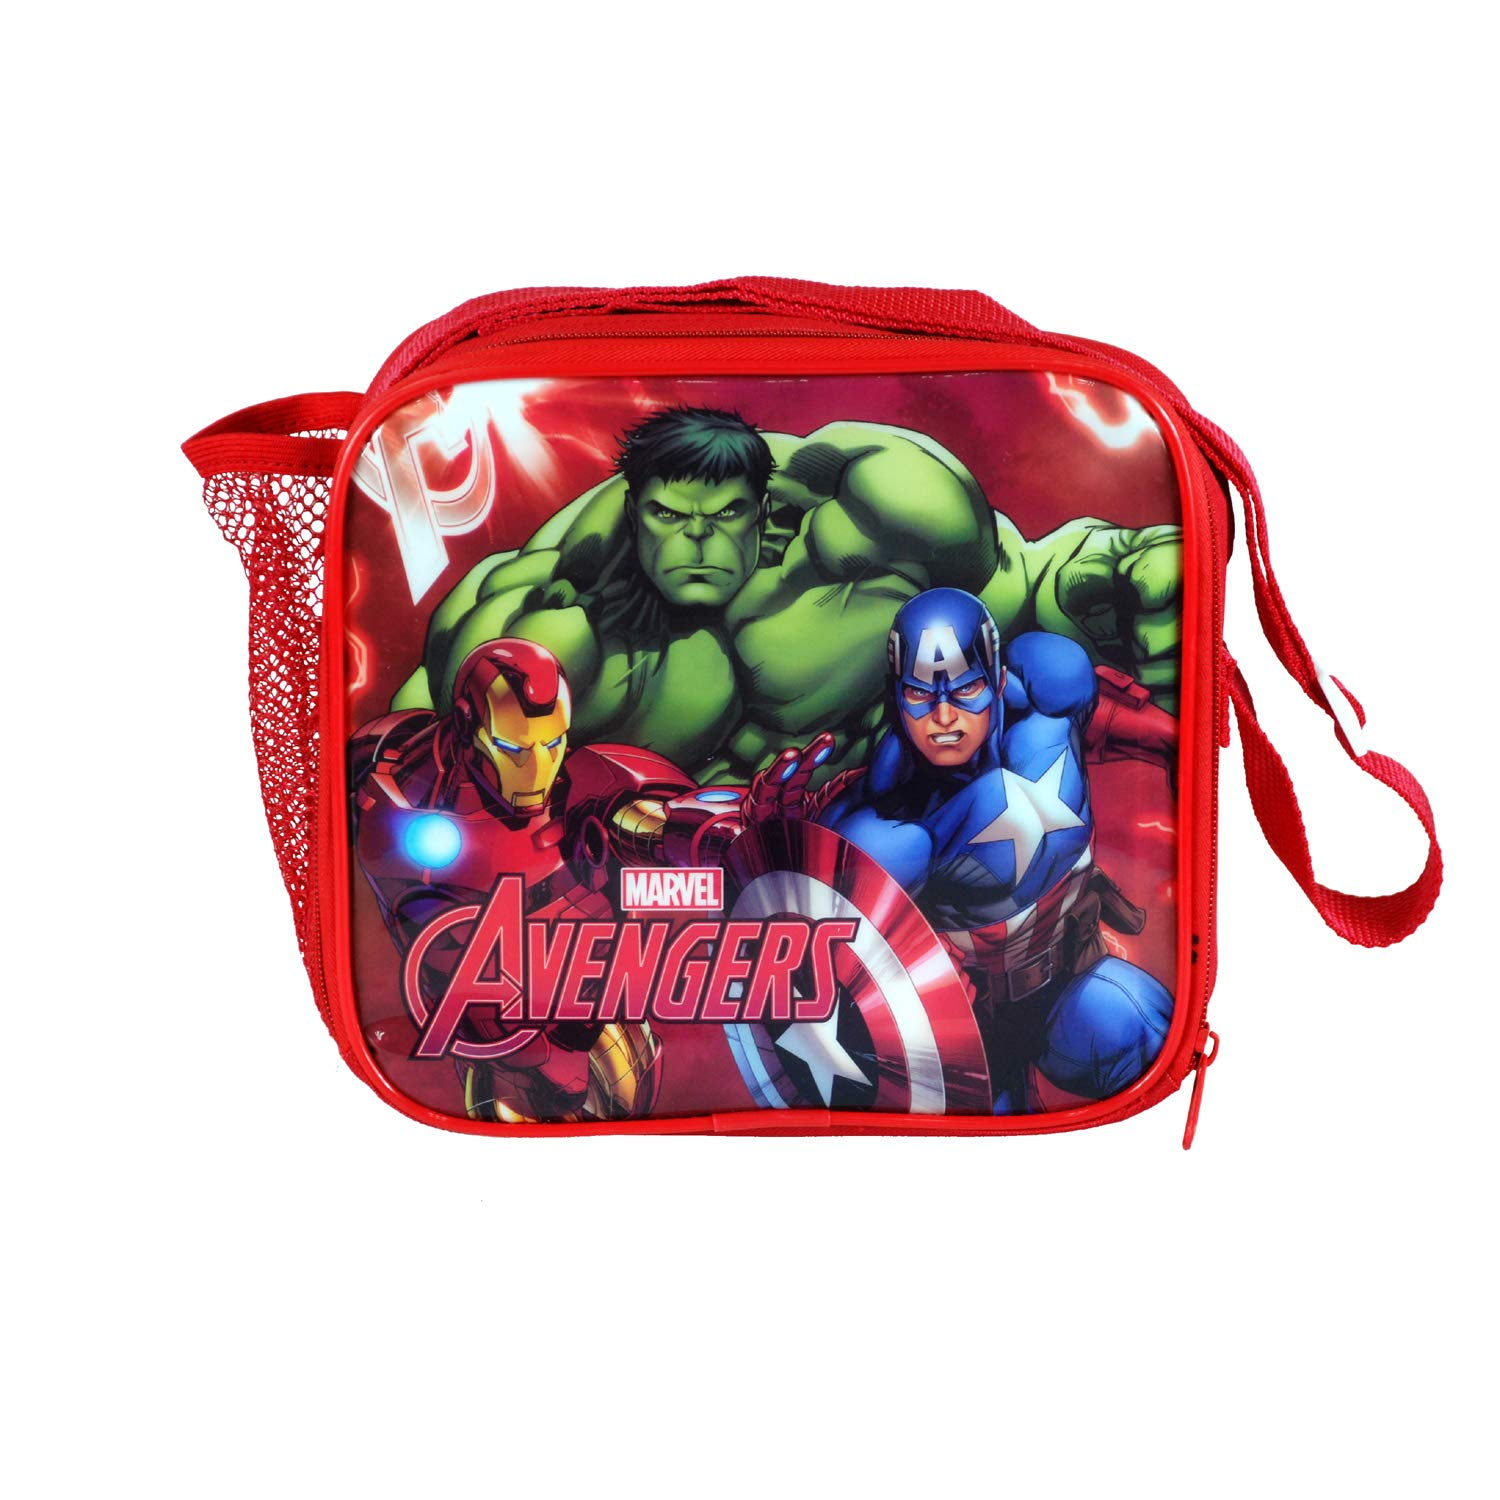 Templar Distributors Ltd Avengers 8PC Back to School Bundle Coin Pouch Pencil Case /& Stationery Set. Drawstring Sports Bag inc Backpack Sandwich Box Insulated Lunch Bag Water Bottle